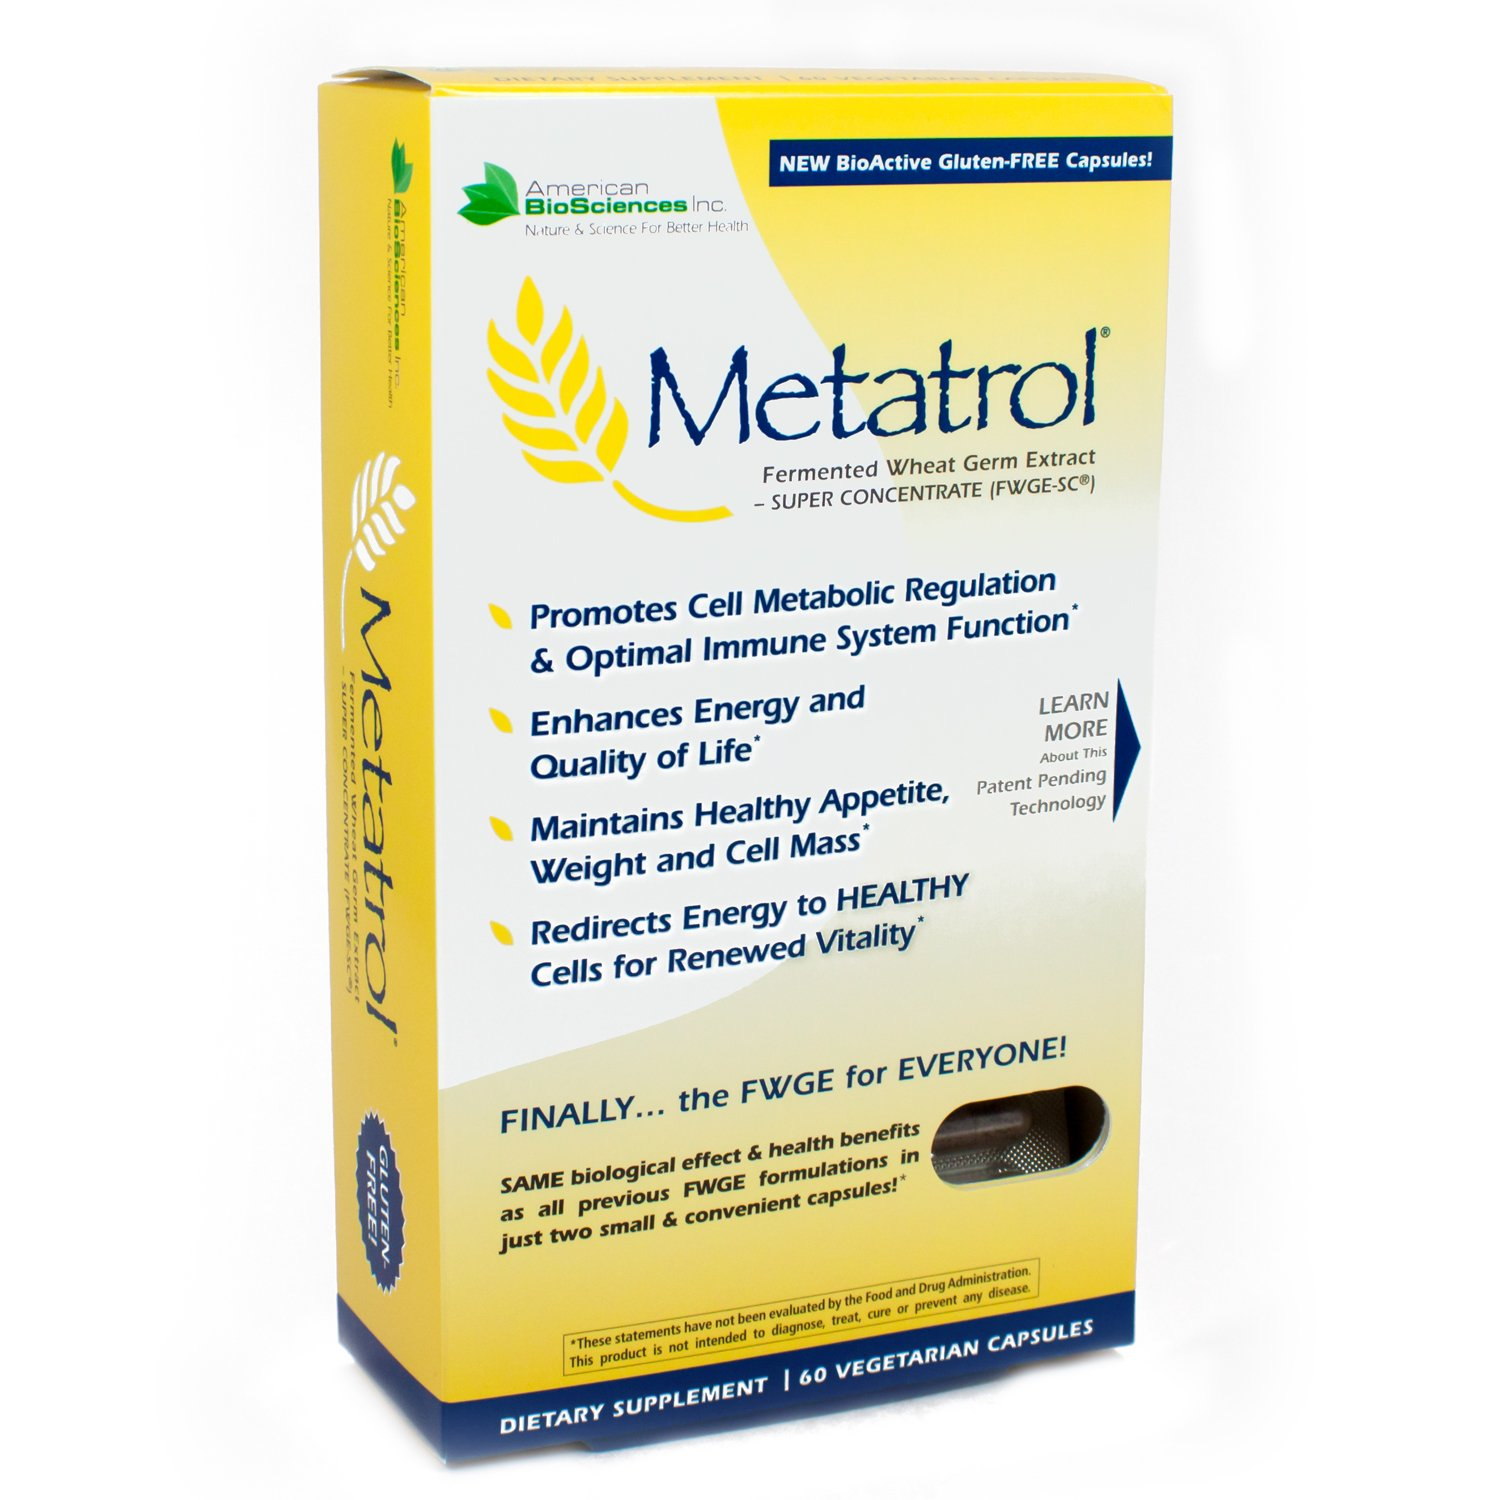 American BioSciences Metatrol Fermented Wheat Germ Extract, Super Concentrate (FWGE-SC) 41 mg, Dietary Supplement - Works Fast To Support Healthy Aging, Longevity and Enhanced Energy - 60Vcaps